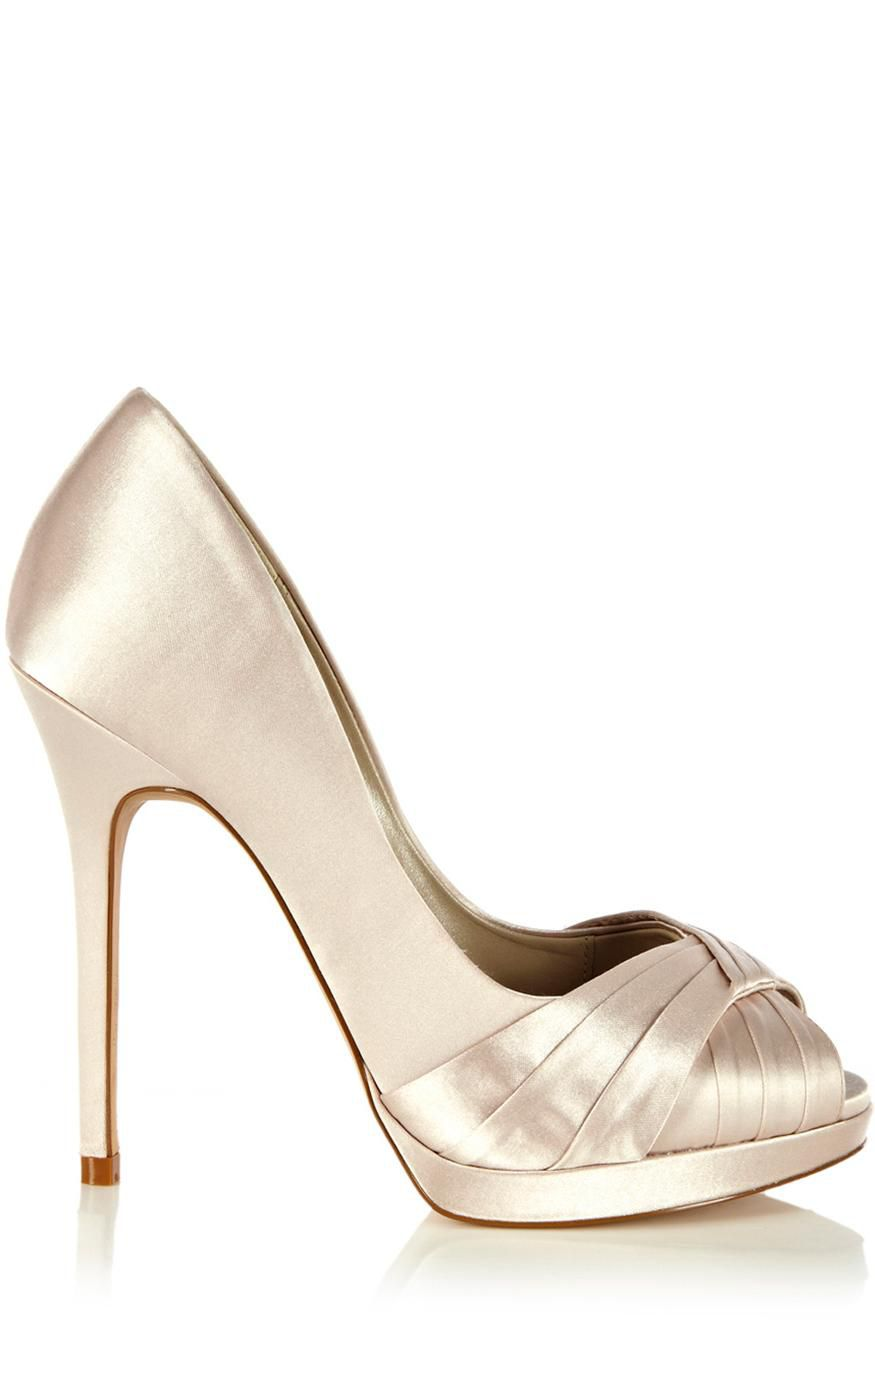 millen pleated satin peep toe platform shoes in gold